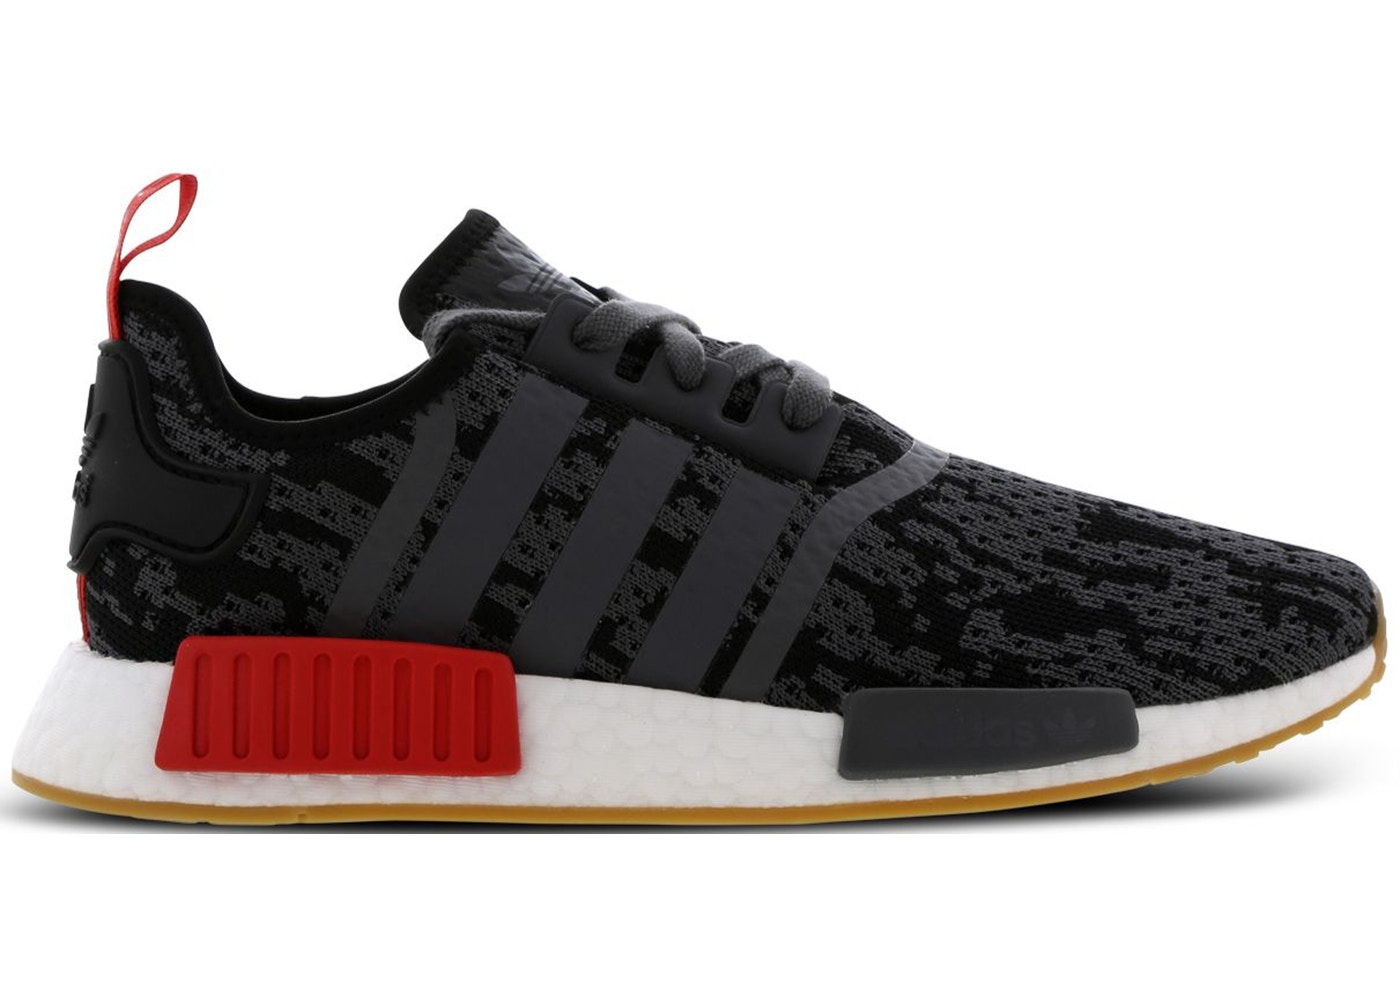 e8ae5f3efe799 adidas NMD R1 Black Grey Red Gum (Foot Locker Exclusive) - CG6666